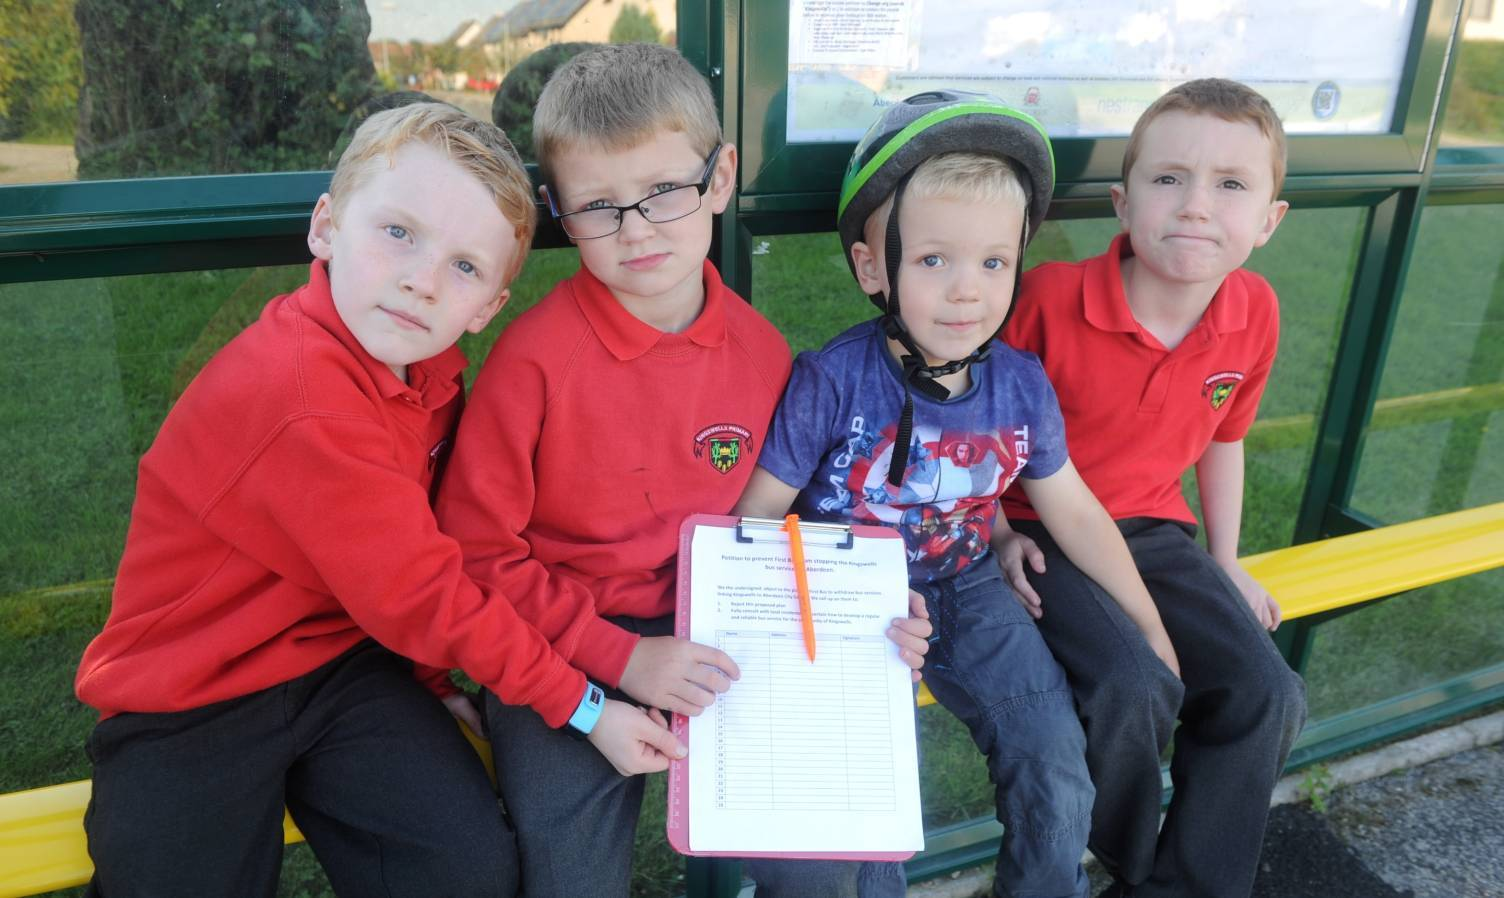 Pictured are from left, Logan Taylor, 7, Clarke White, 7, Aiden Taylor, 3 and Zak Graham, 7.